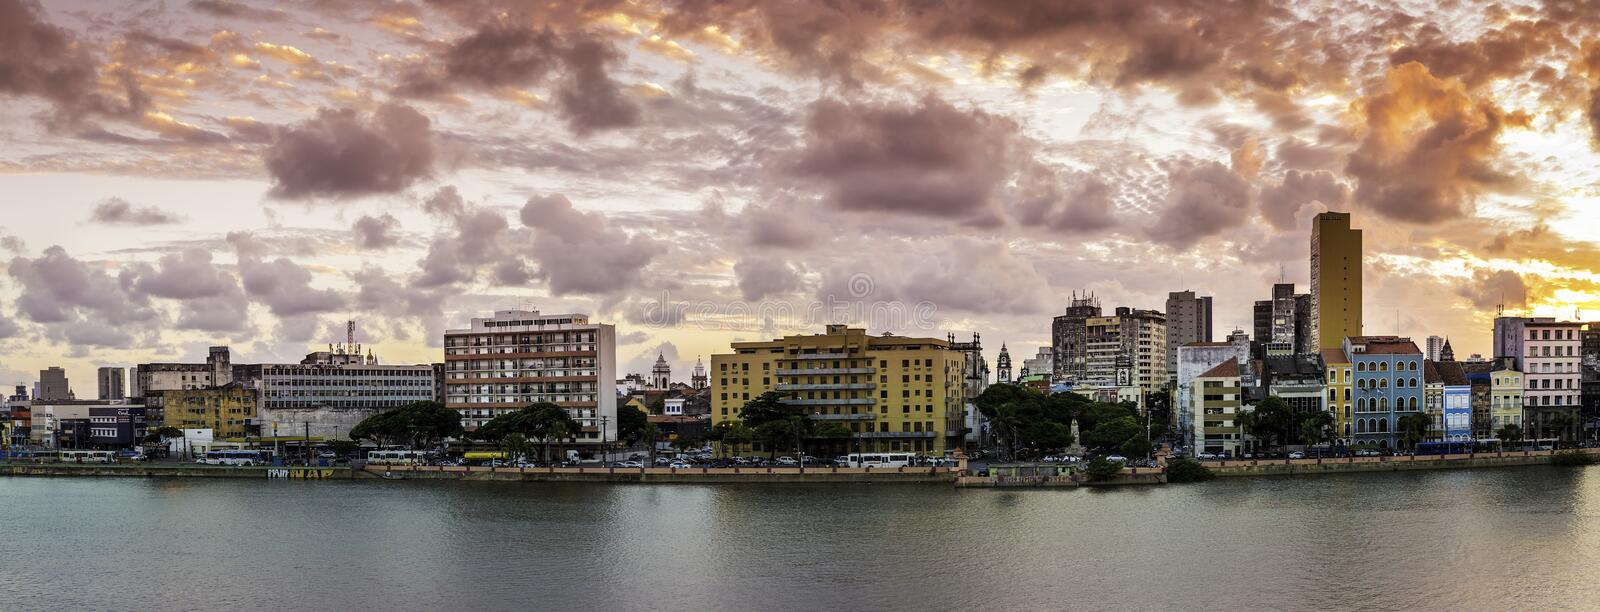 Recife. Aerial view of Recife in Pernambuco, Brazil at sunset stock images